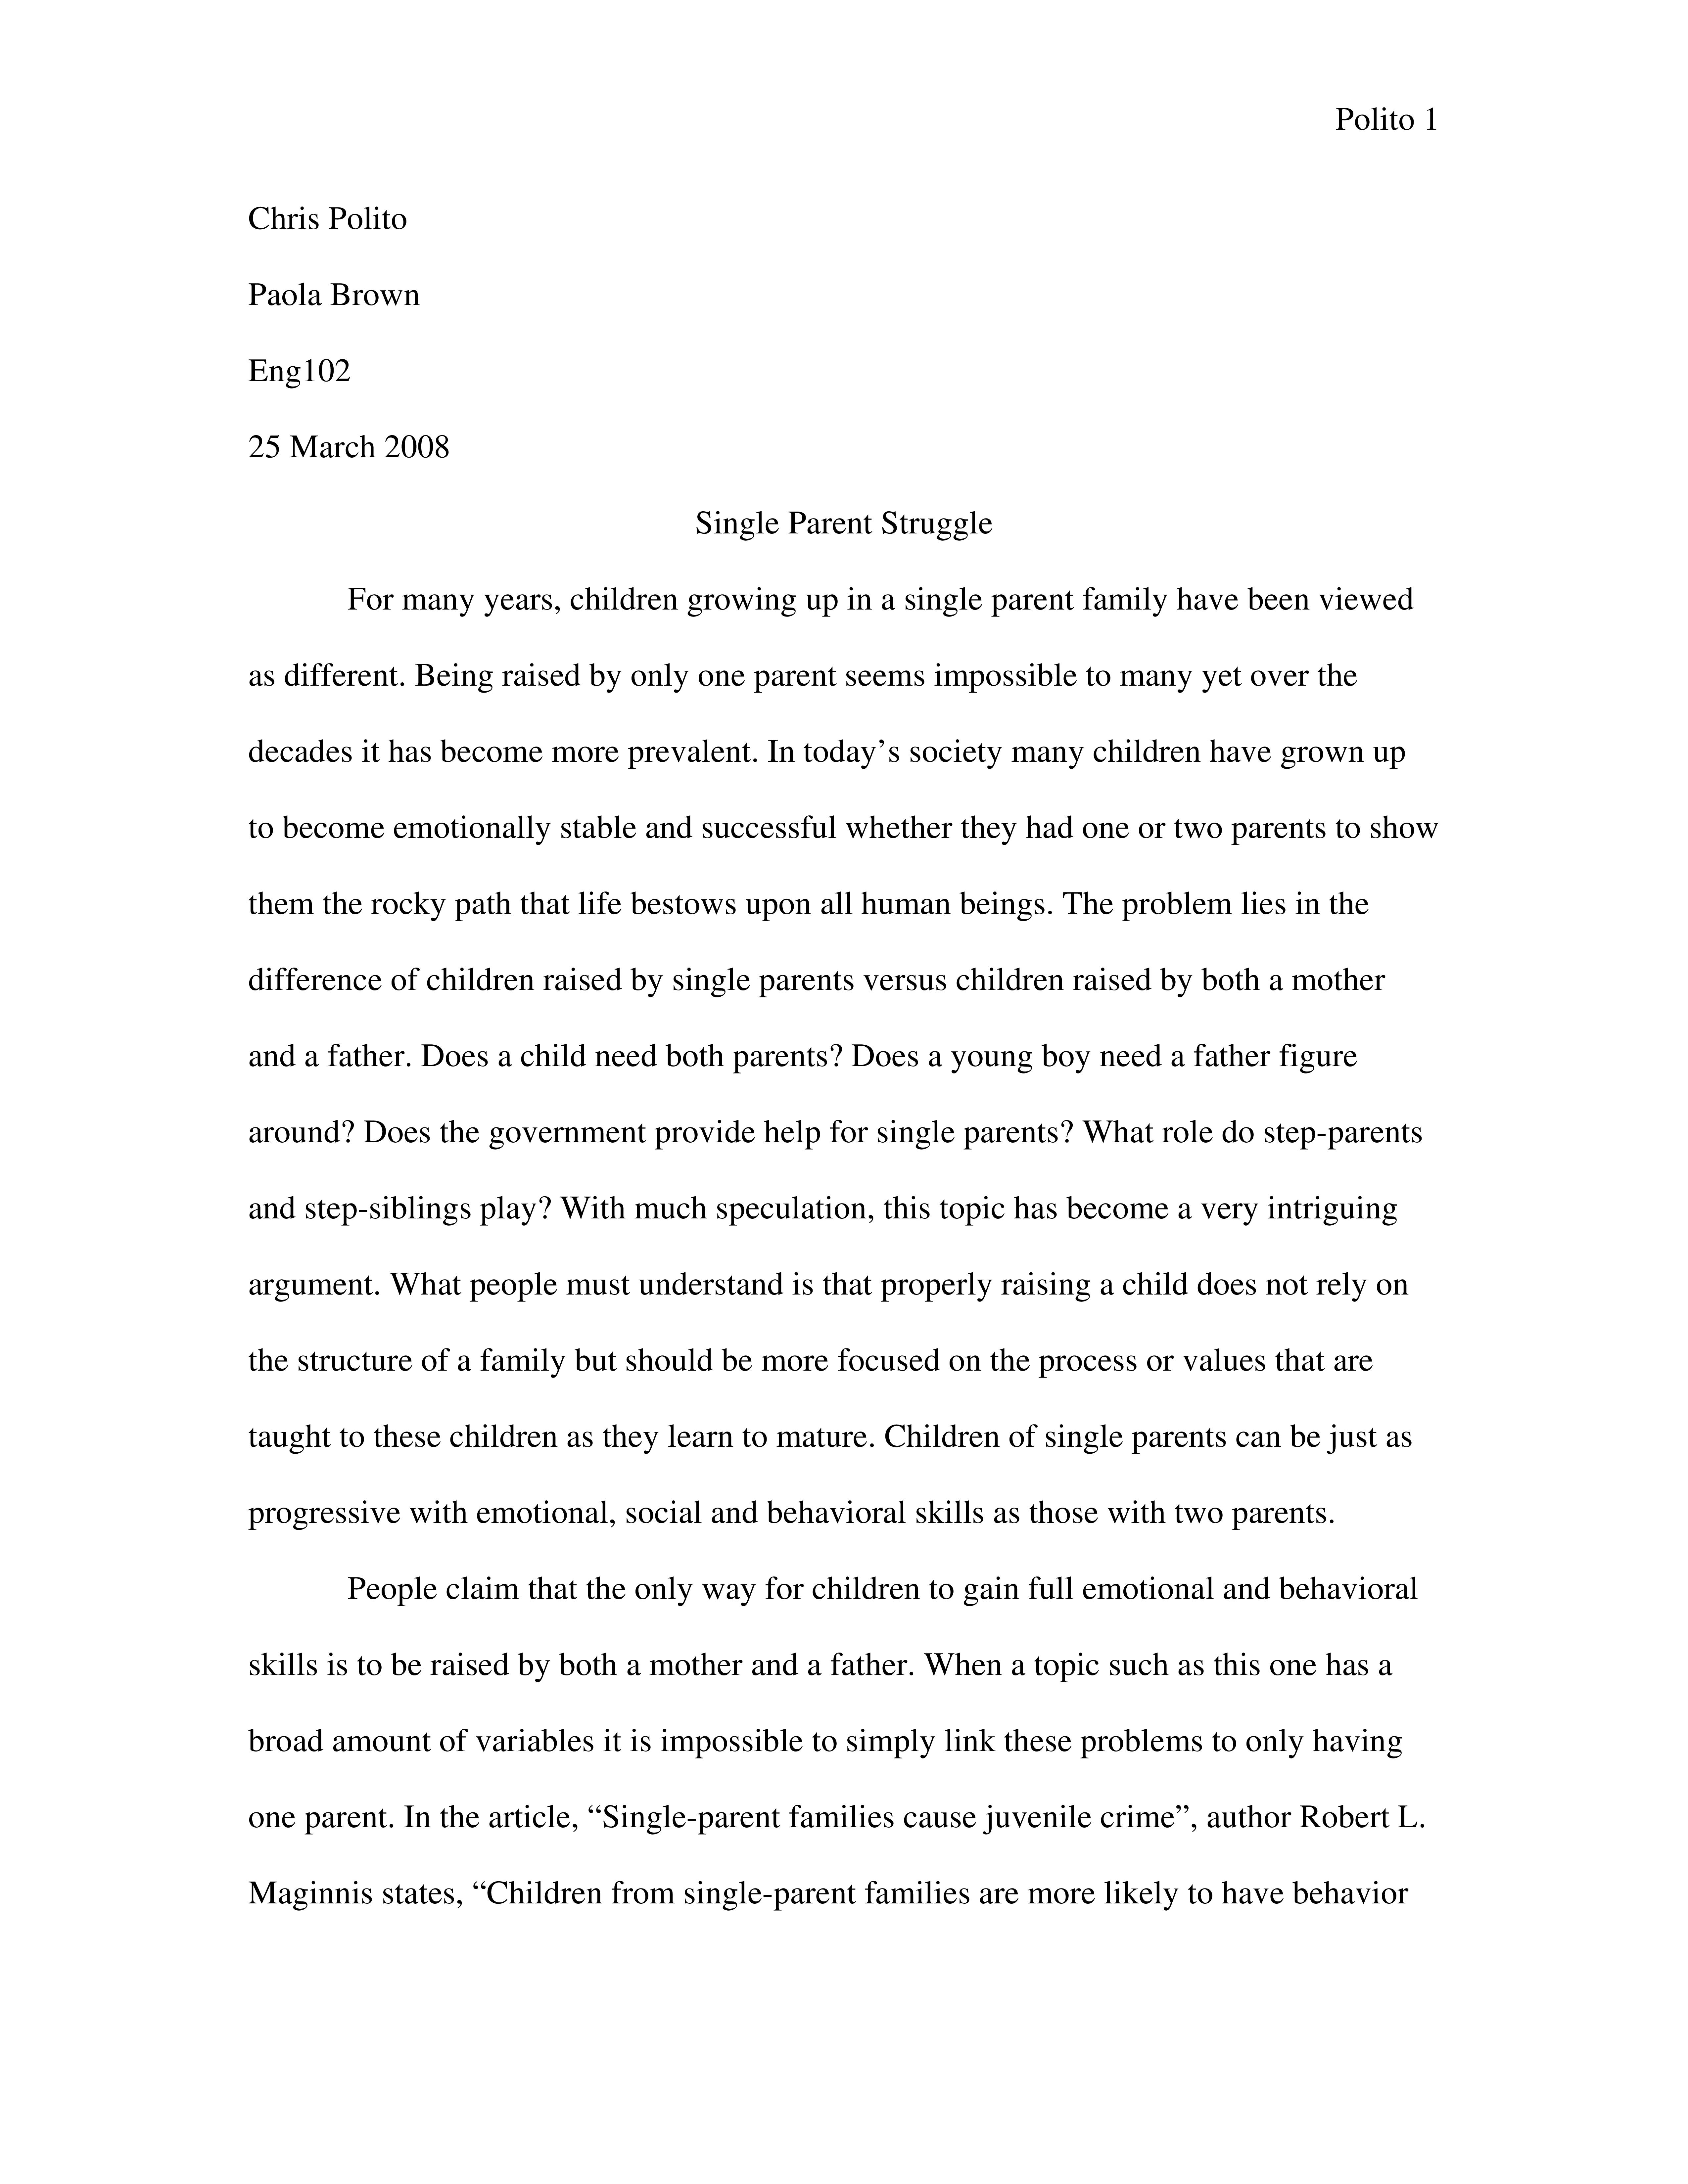 013 Expository Essay Sample 2 Format Fascinating Examples For College Pdf Outline Full